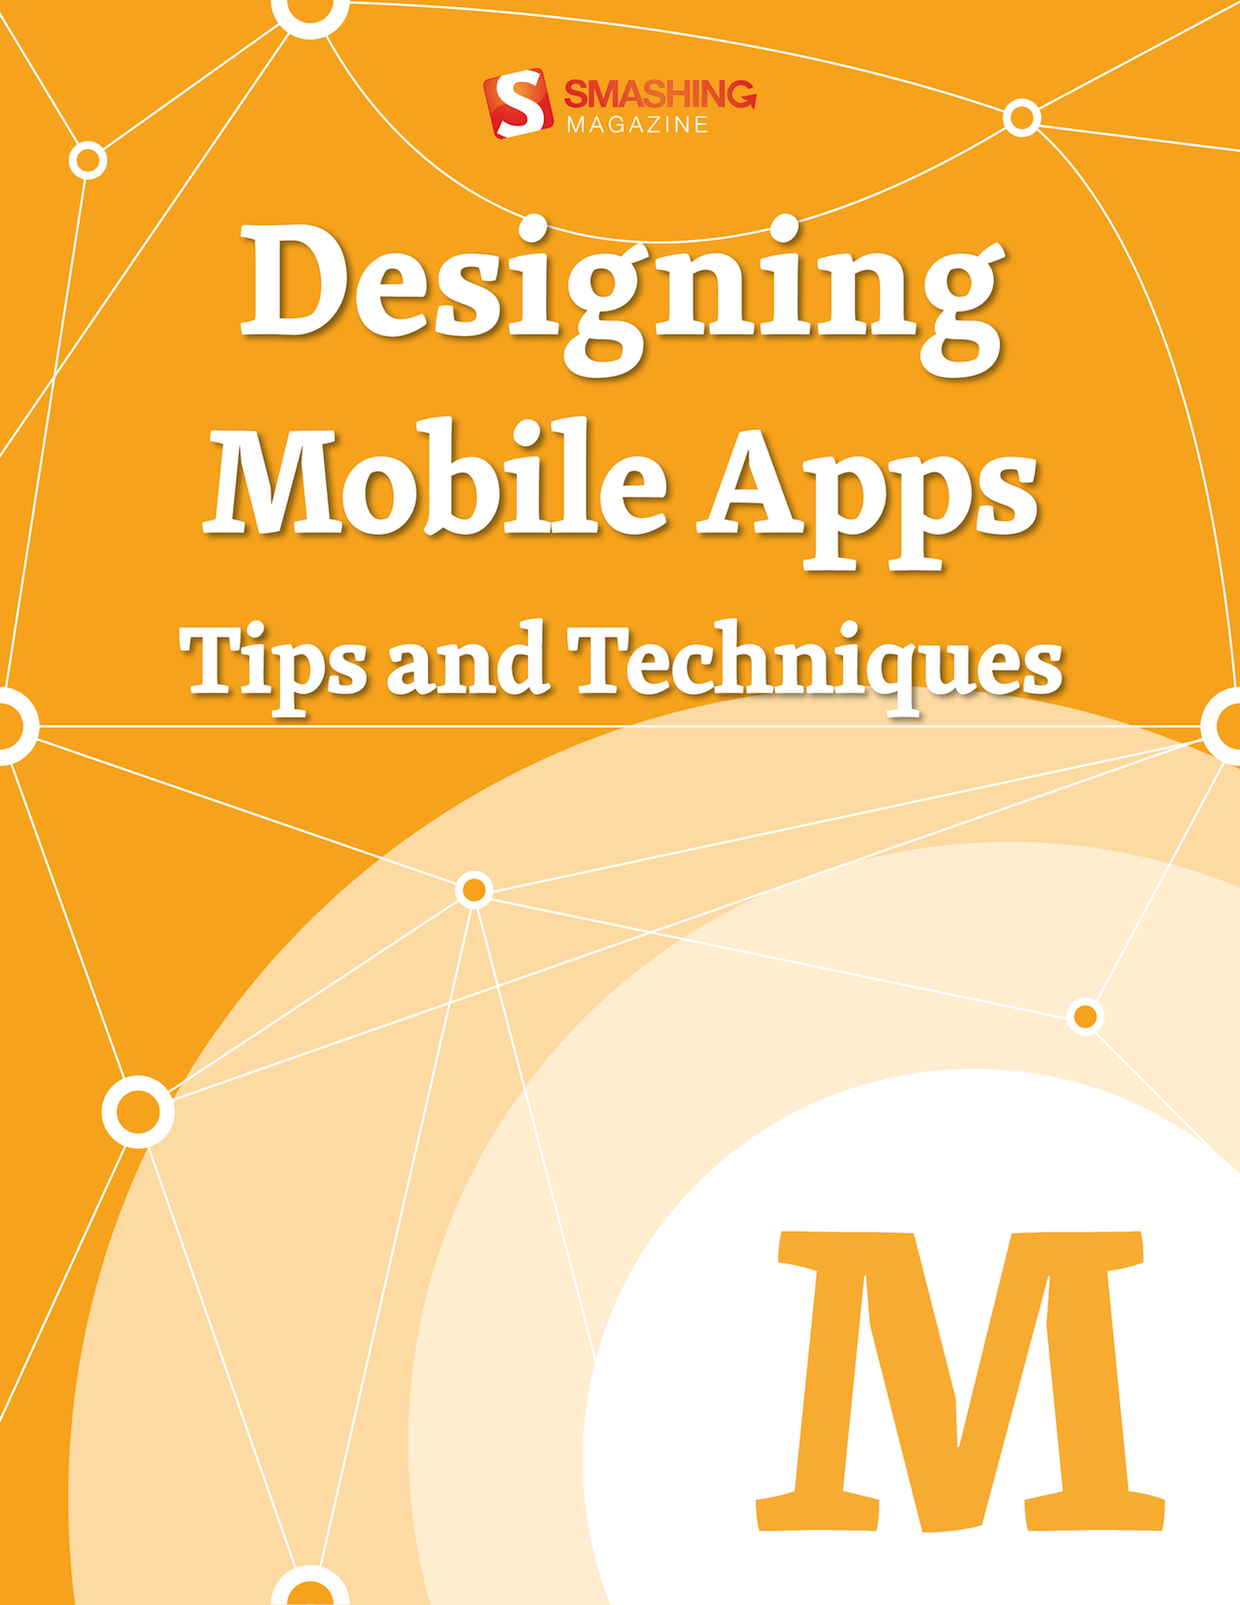 Designing Mobile Apps